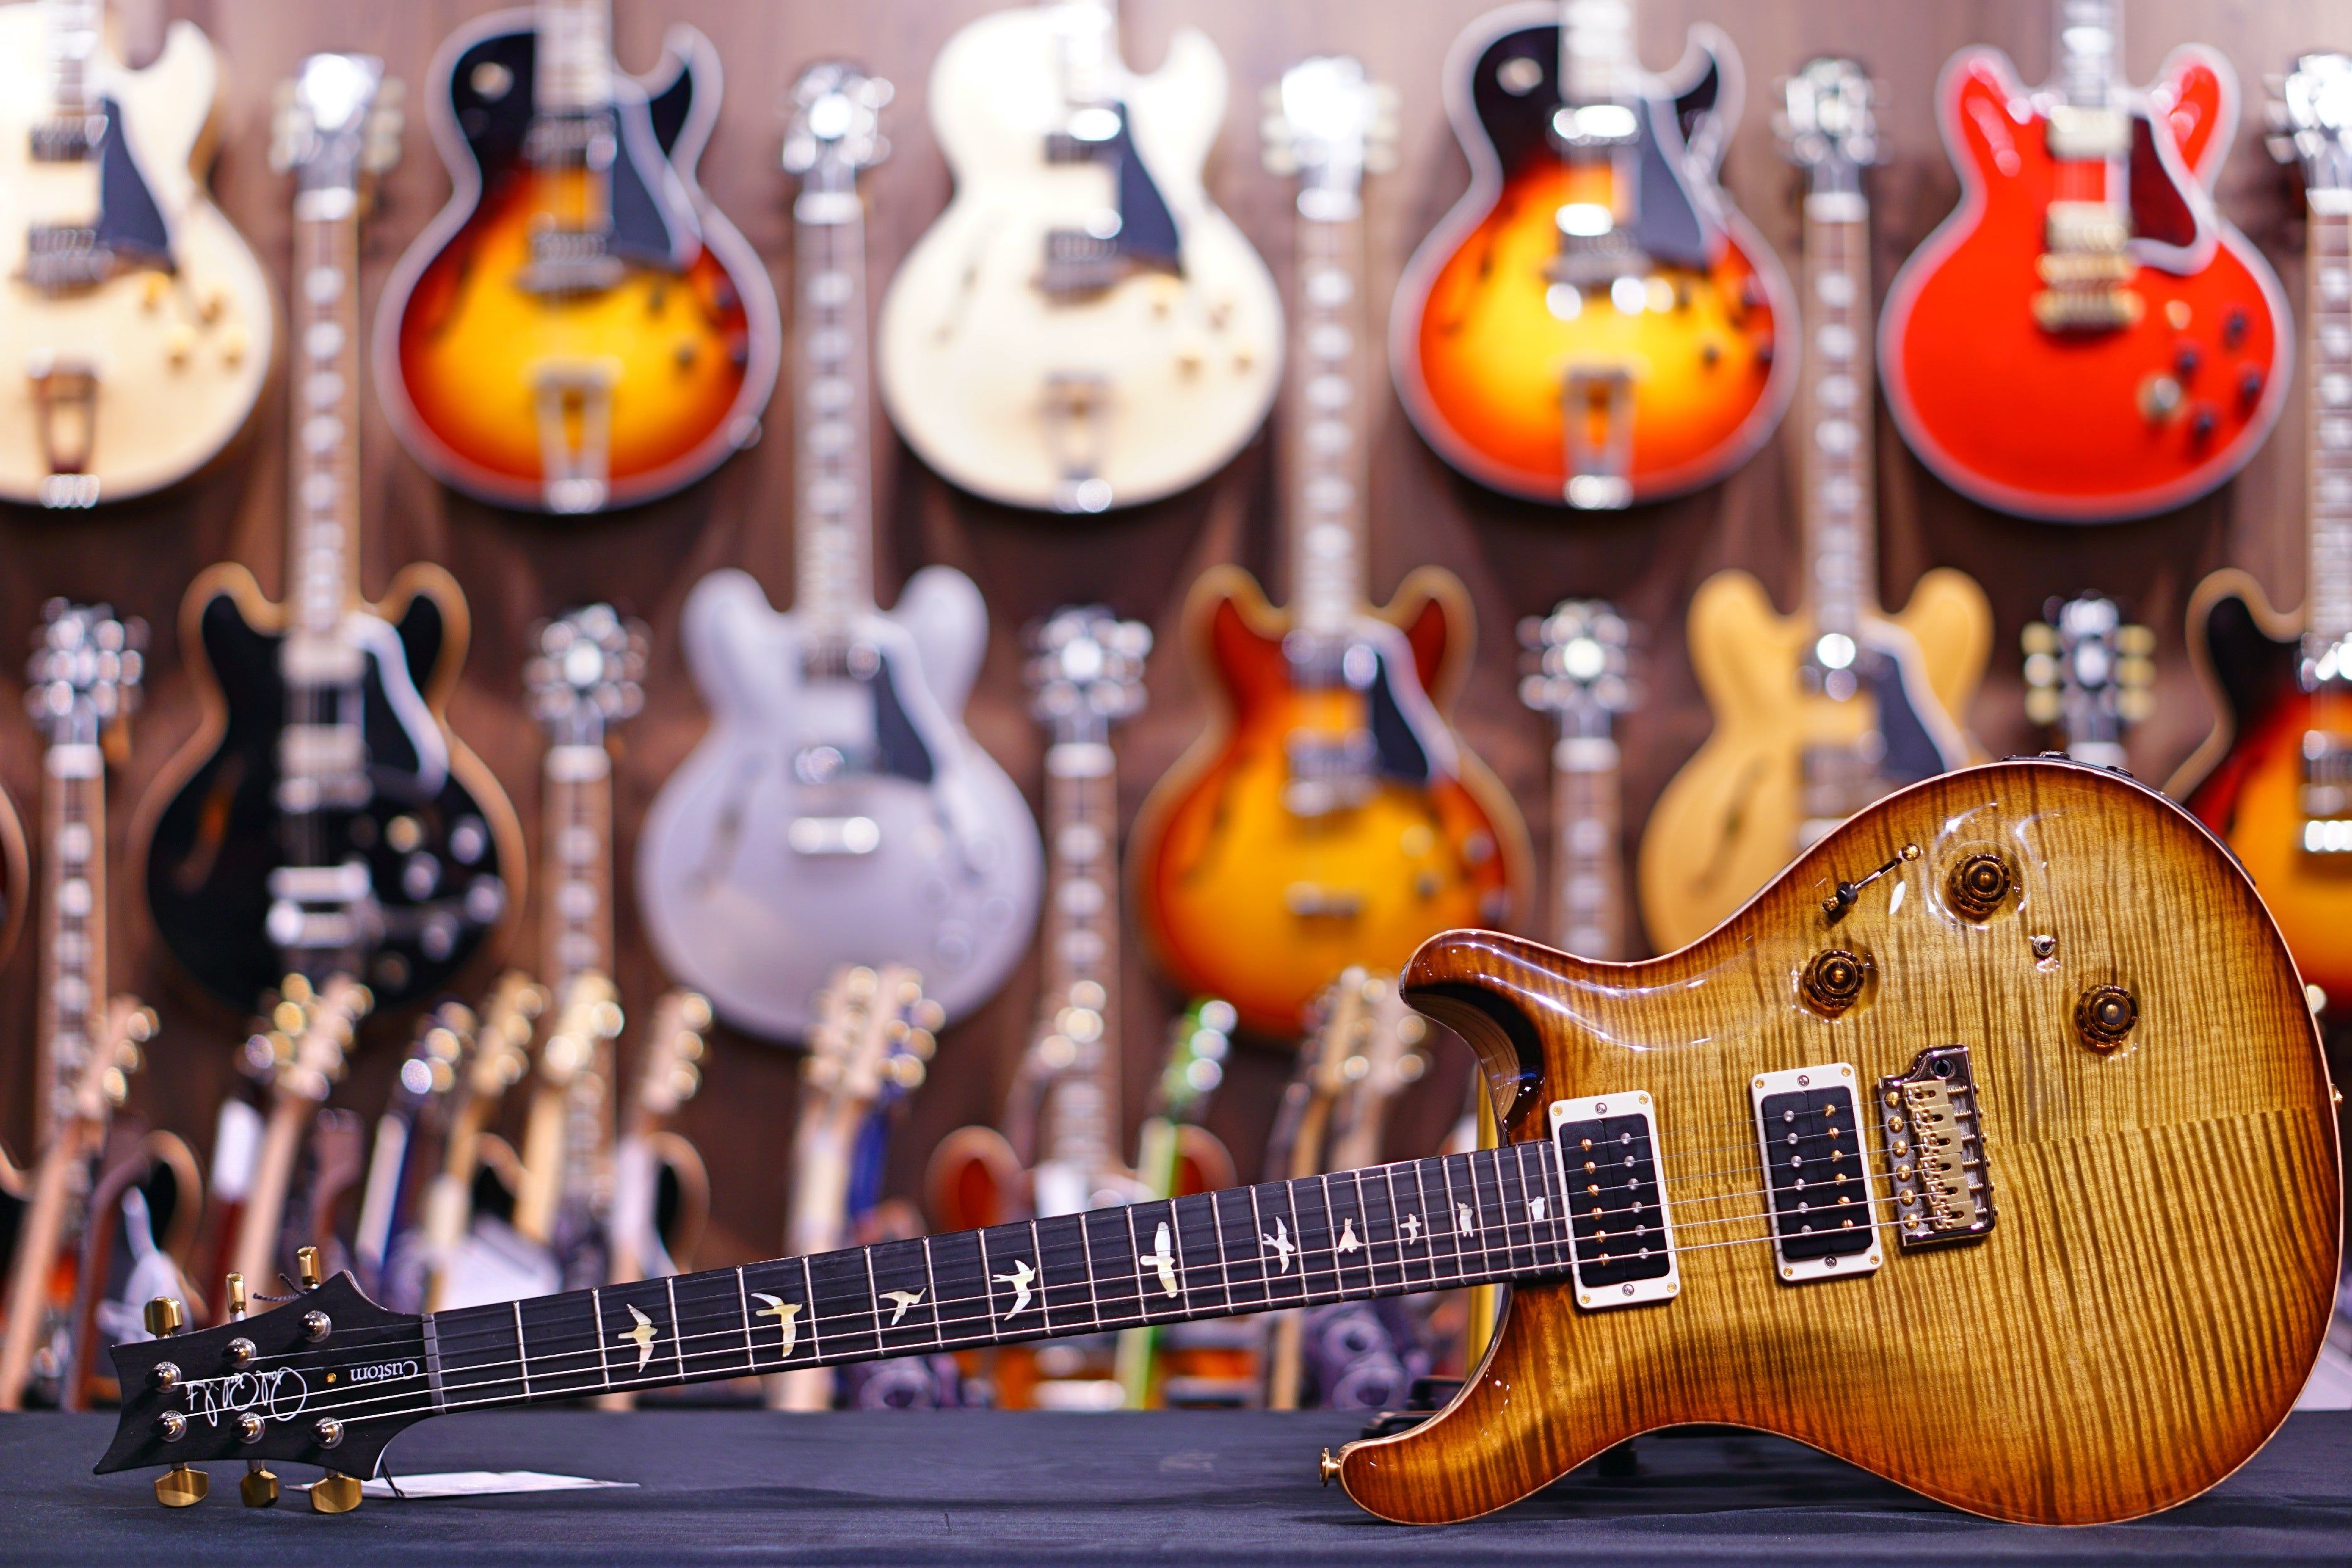 PRS Custom 24 piezo wood library Artist flame burnt almond 19 0277323 PRS - HIENDGUITAR.COM